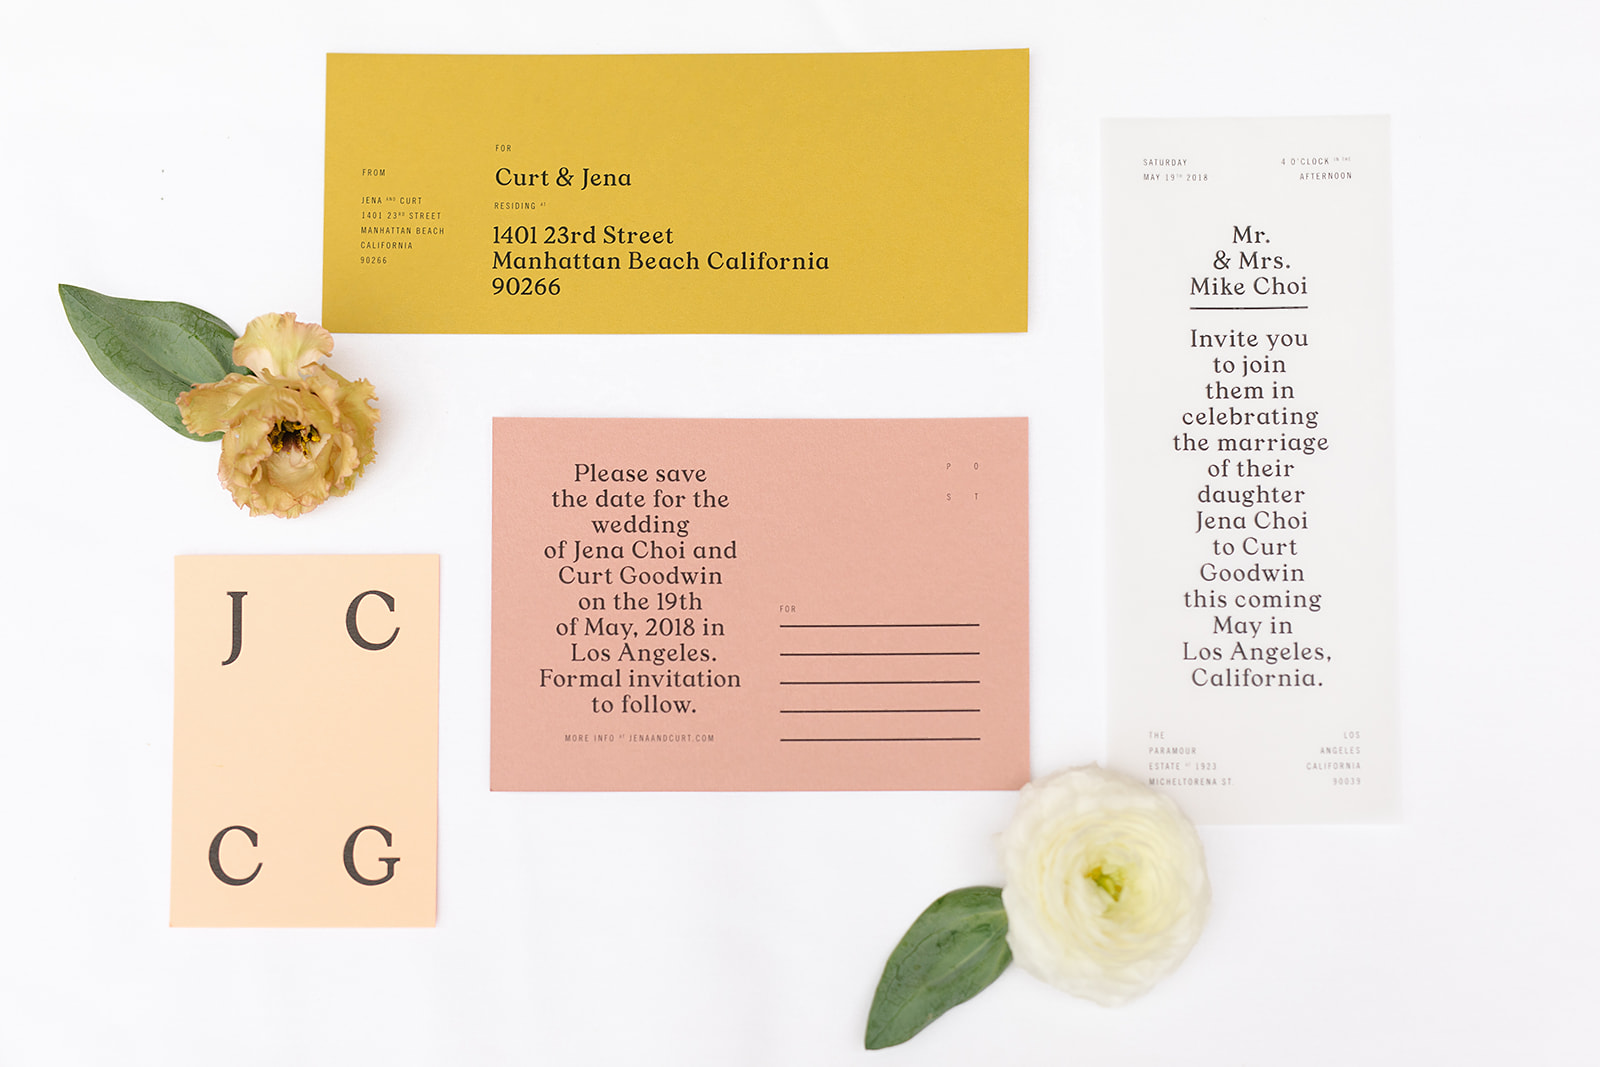 Paramour Mansion wedding in Los Angeles - Goods Gang Invitation